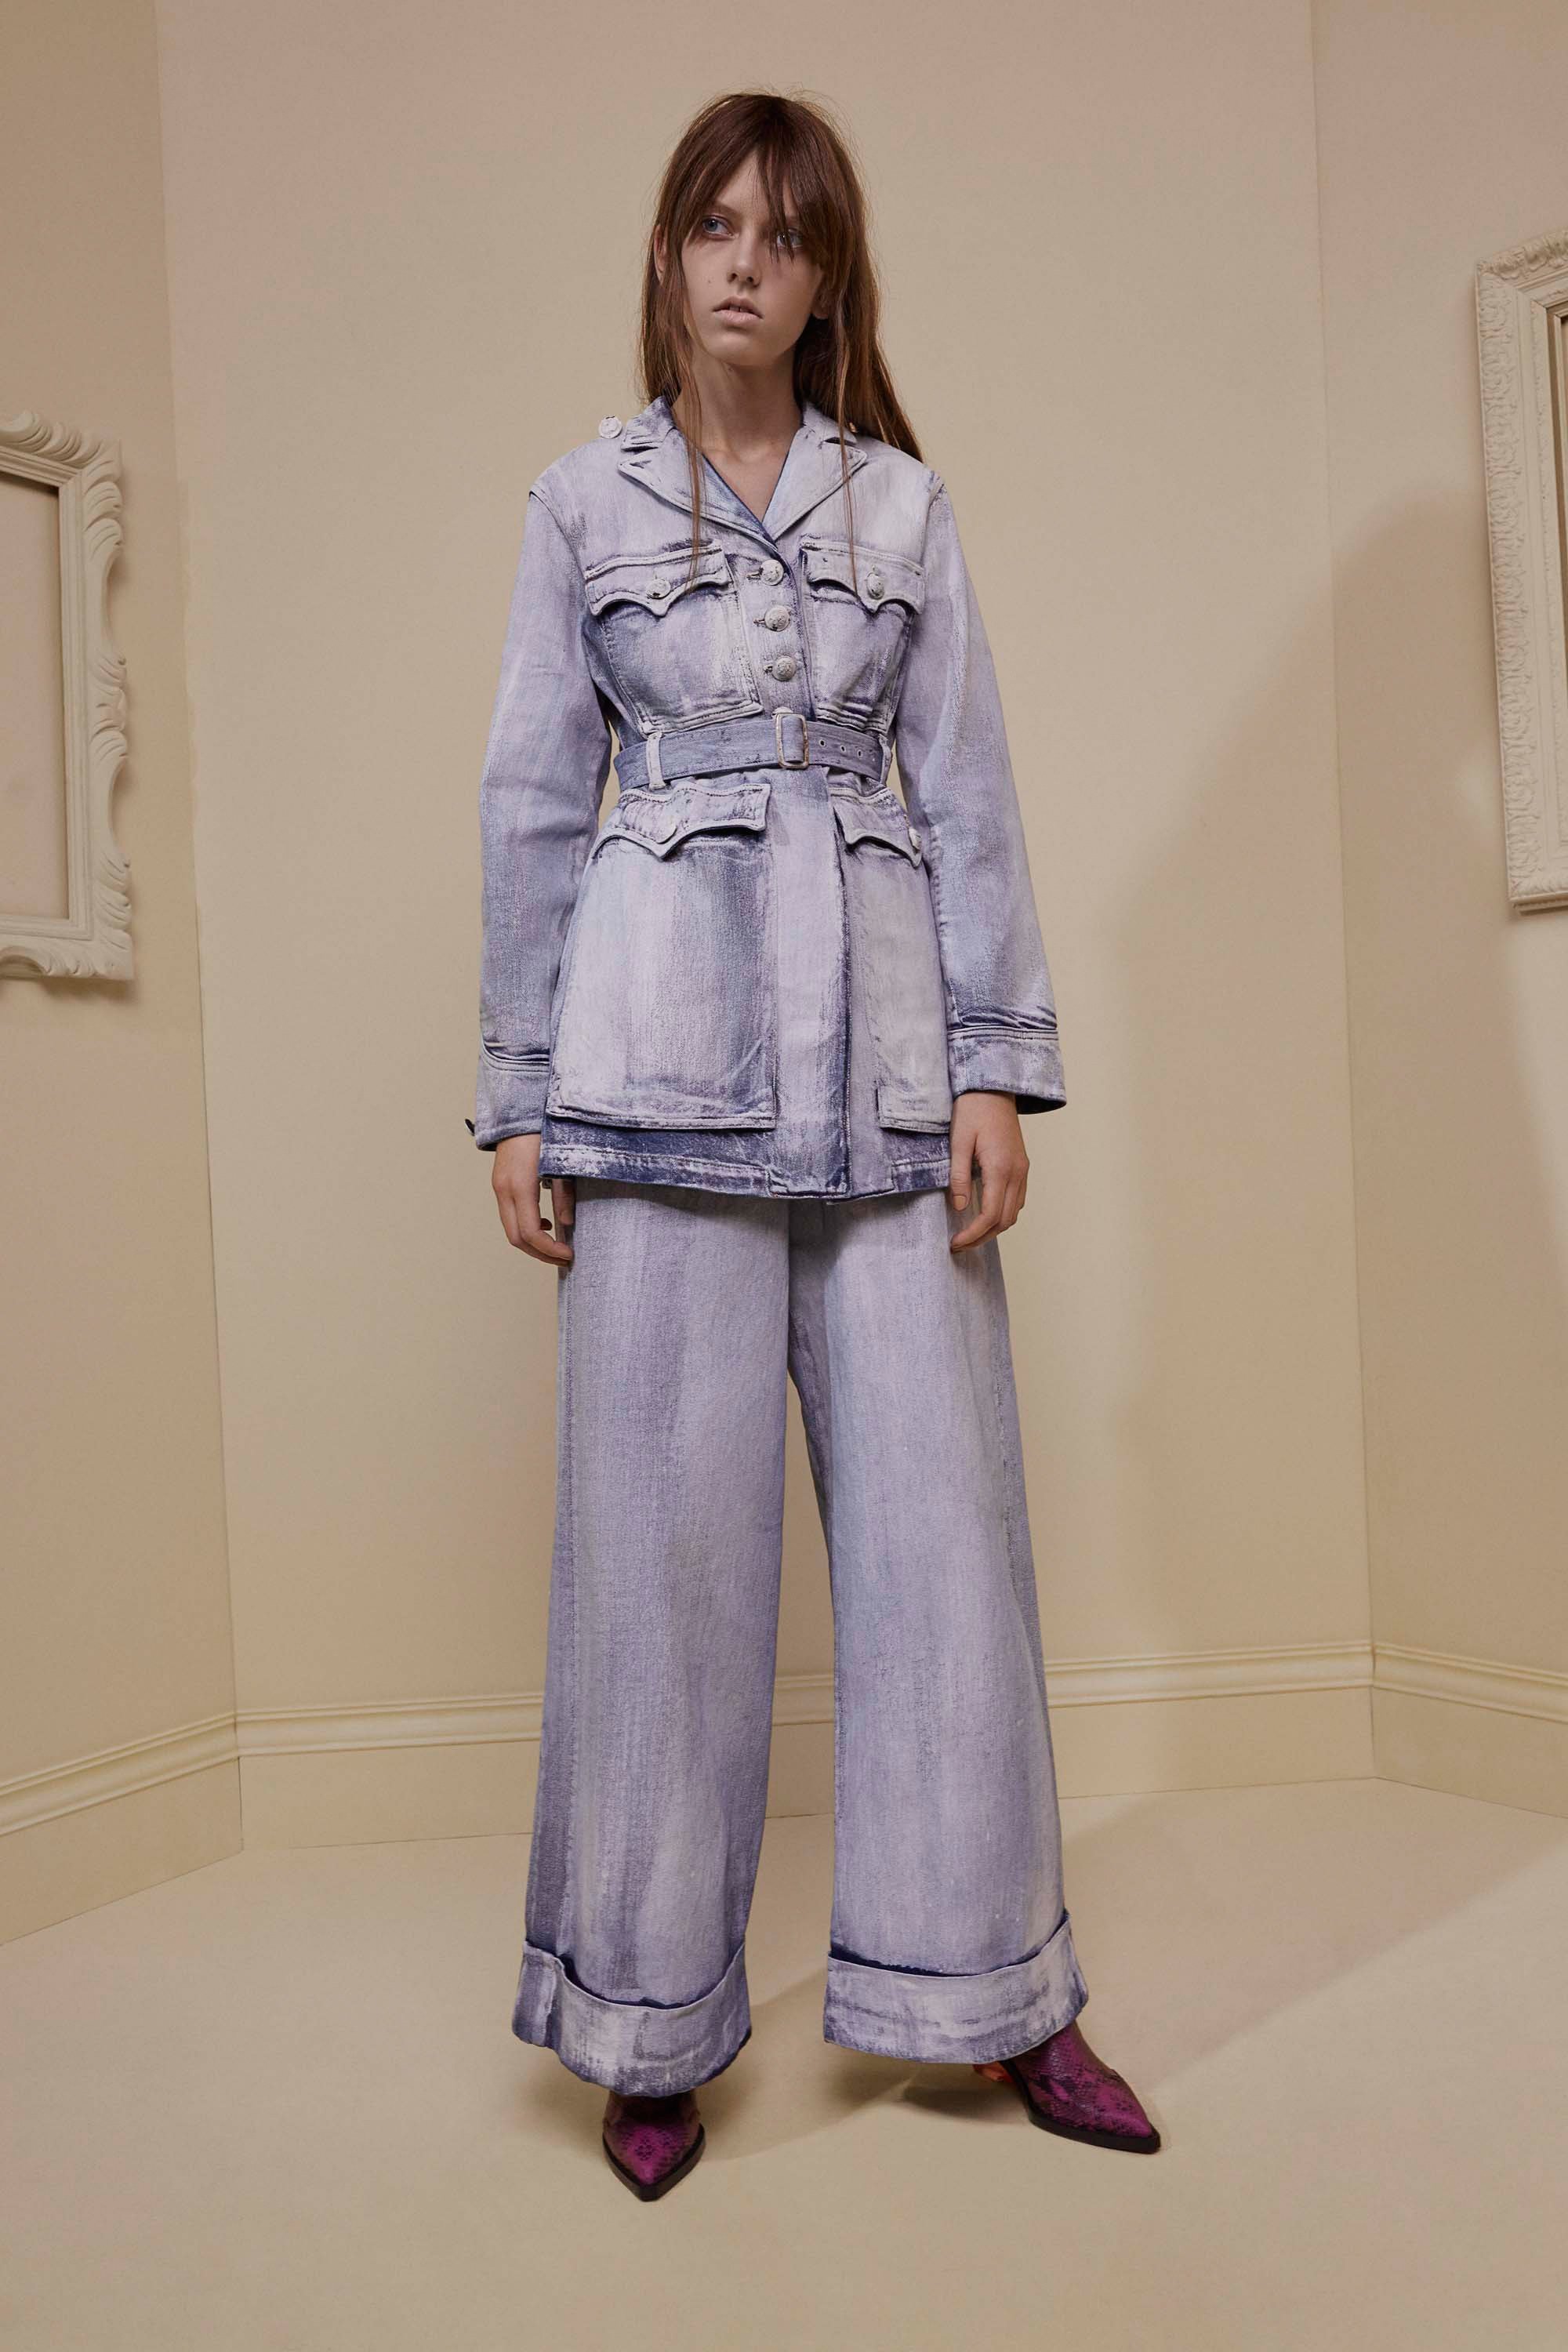 mm6-maison-margiela-pre-fall-2017-fashion-show-the-impression-19